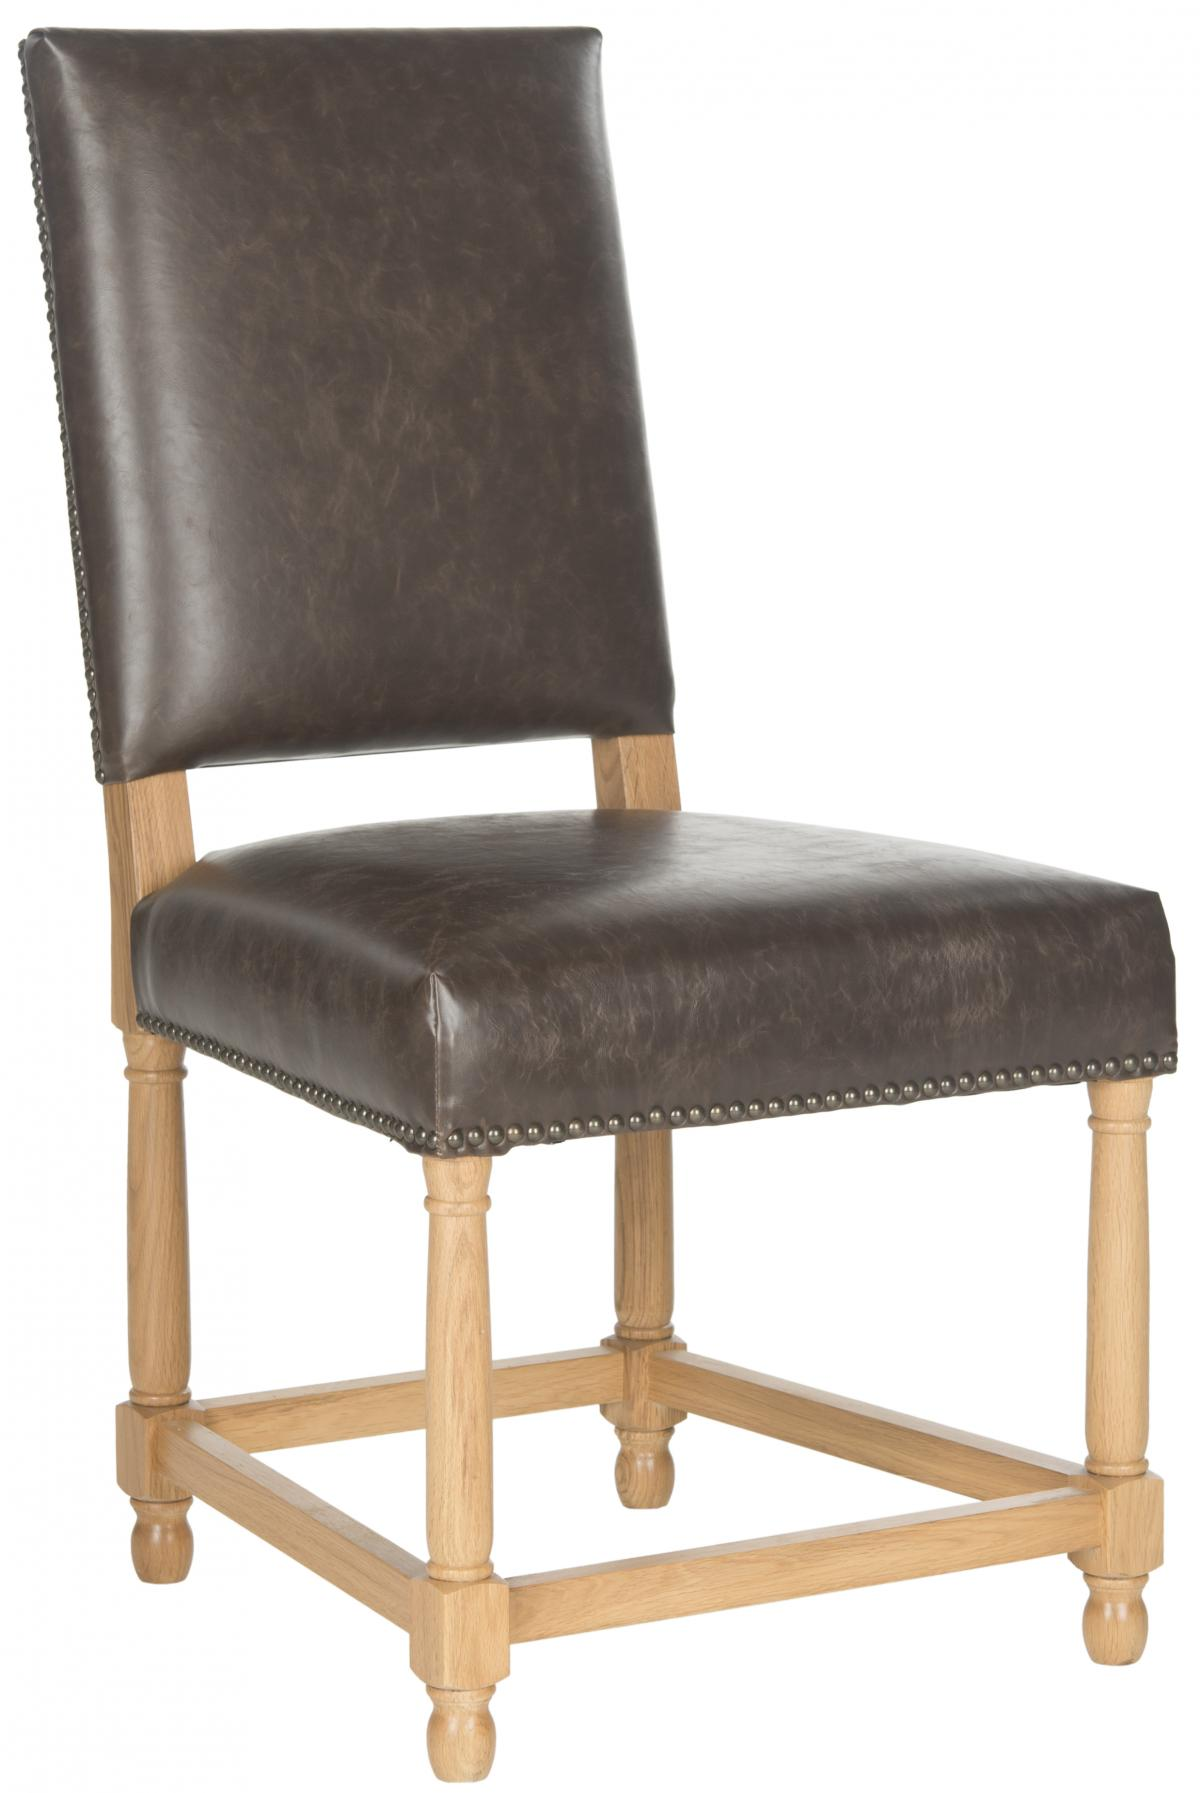 Safavieh - MCR4557B FAXON SIDE CHAIR - ANTIQUE BROWN ...